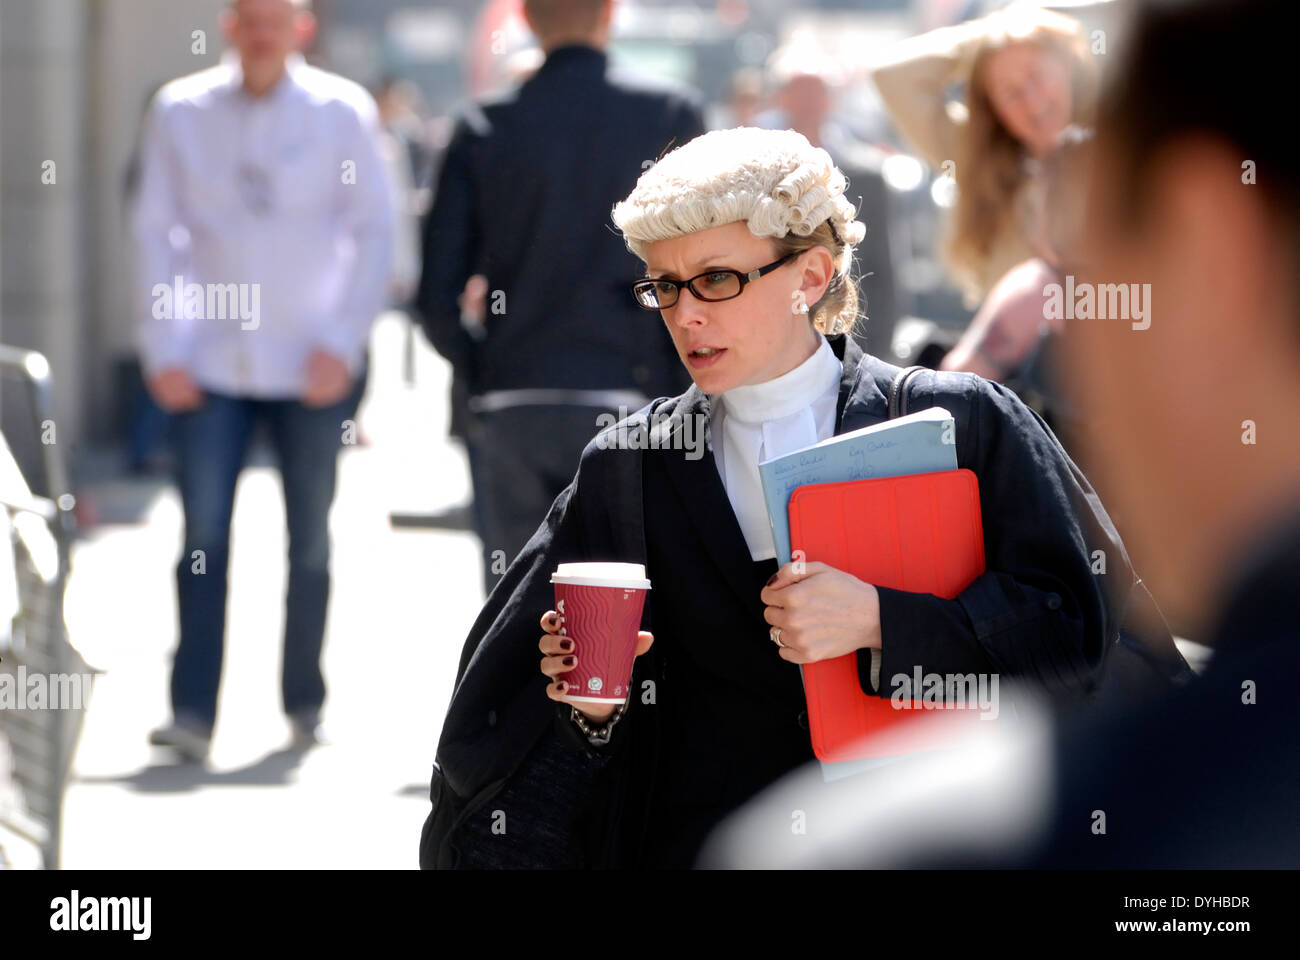 London, England, UK. Female barrister carrying a cup of coffee outside the Central Criminal Court, Old Bailey - Stock Image